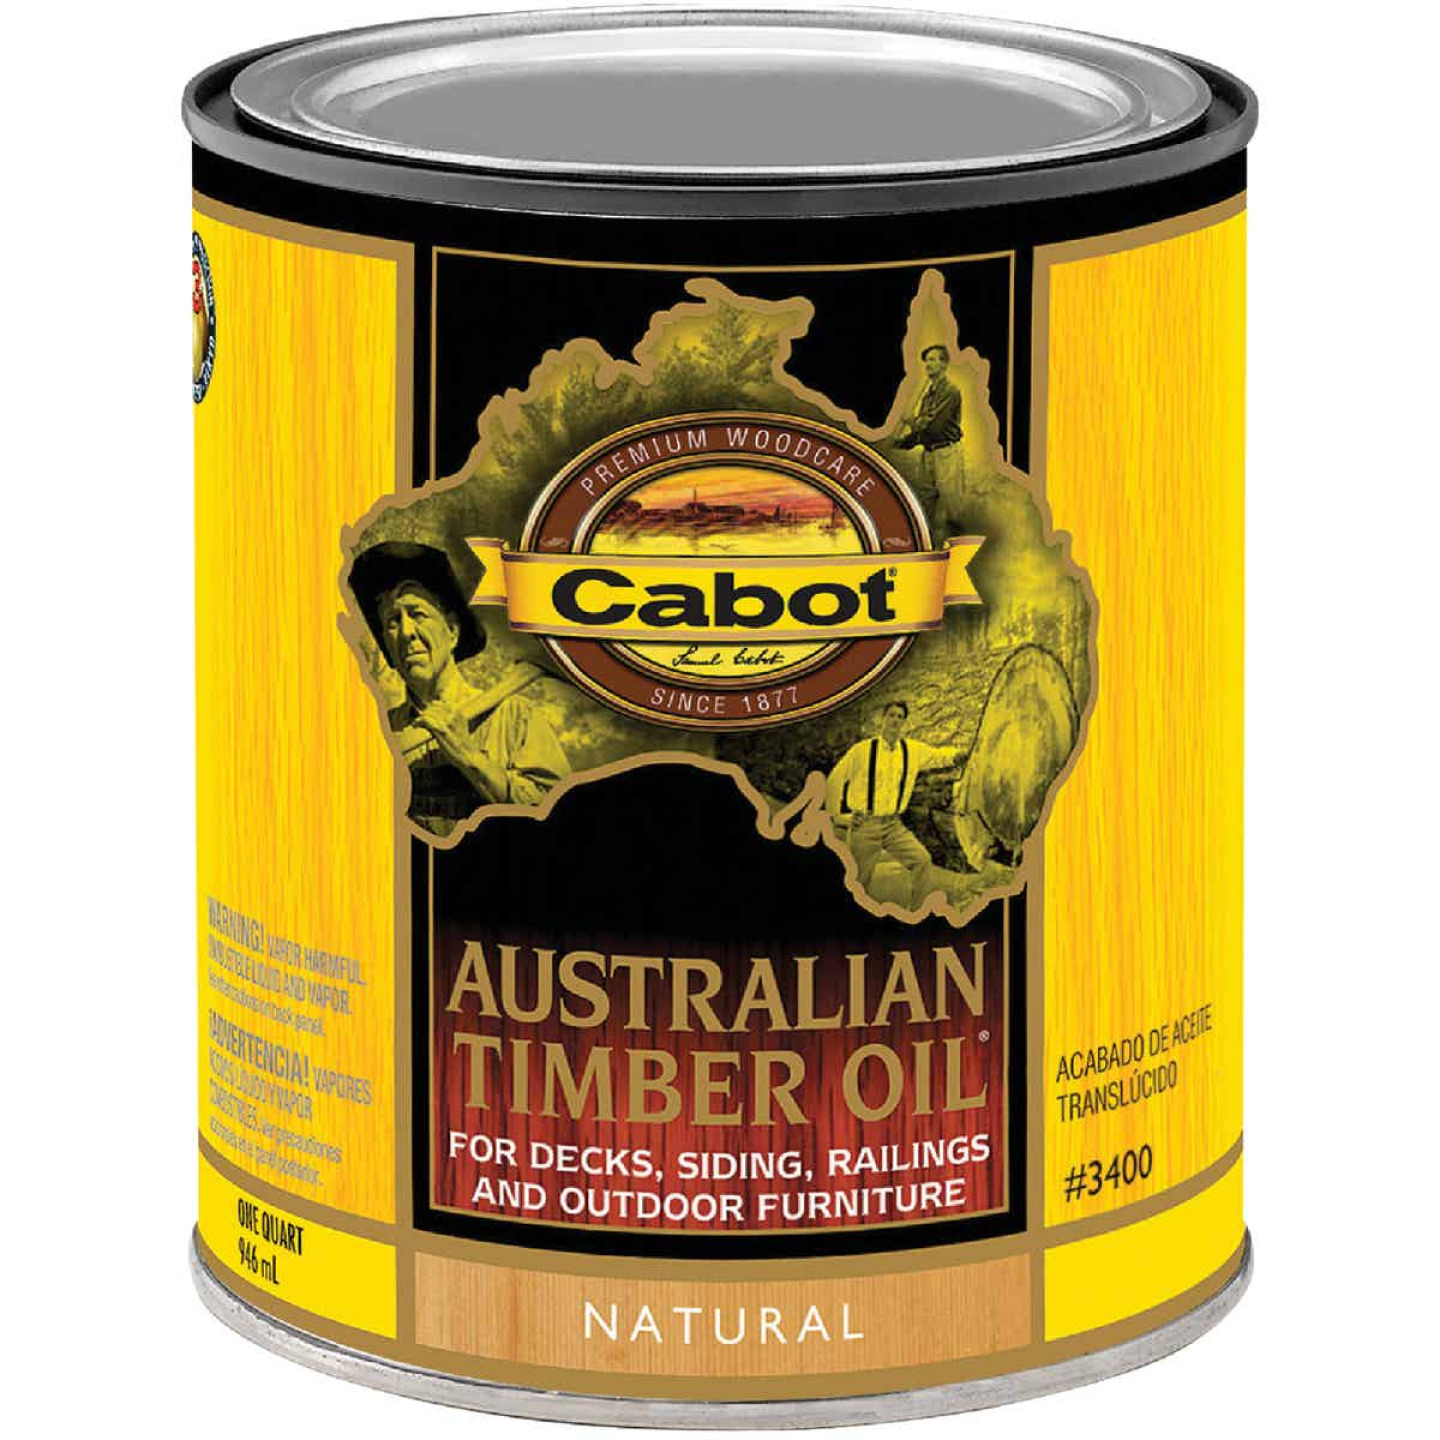 Cabot Australian Timber Oil Translucent Exterior Oil Finish, Natural, 1 Qt. Image 1